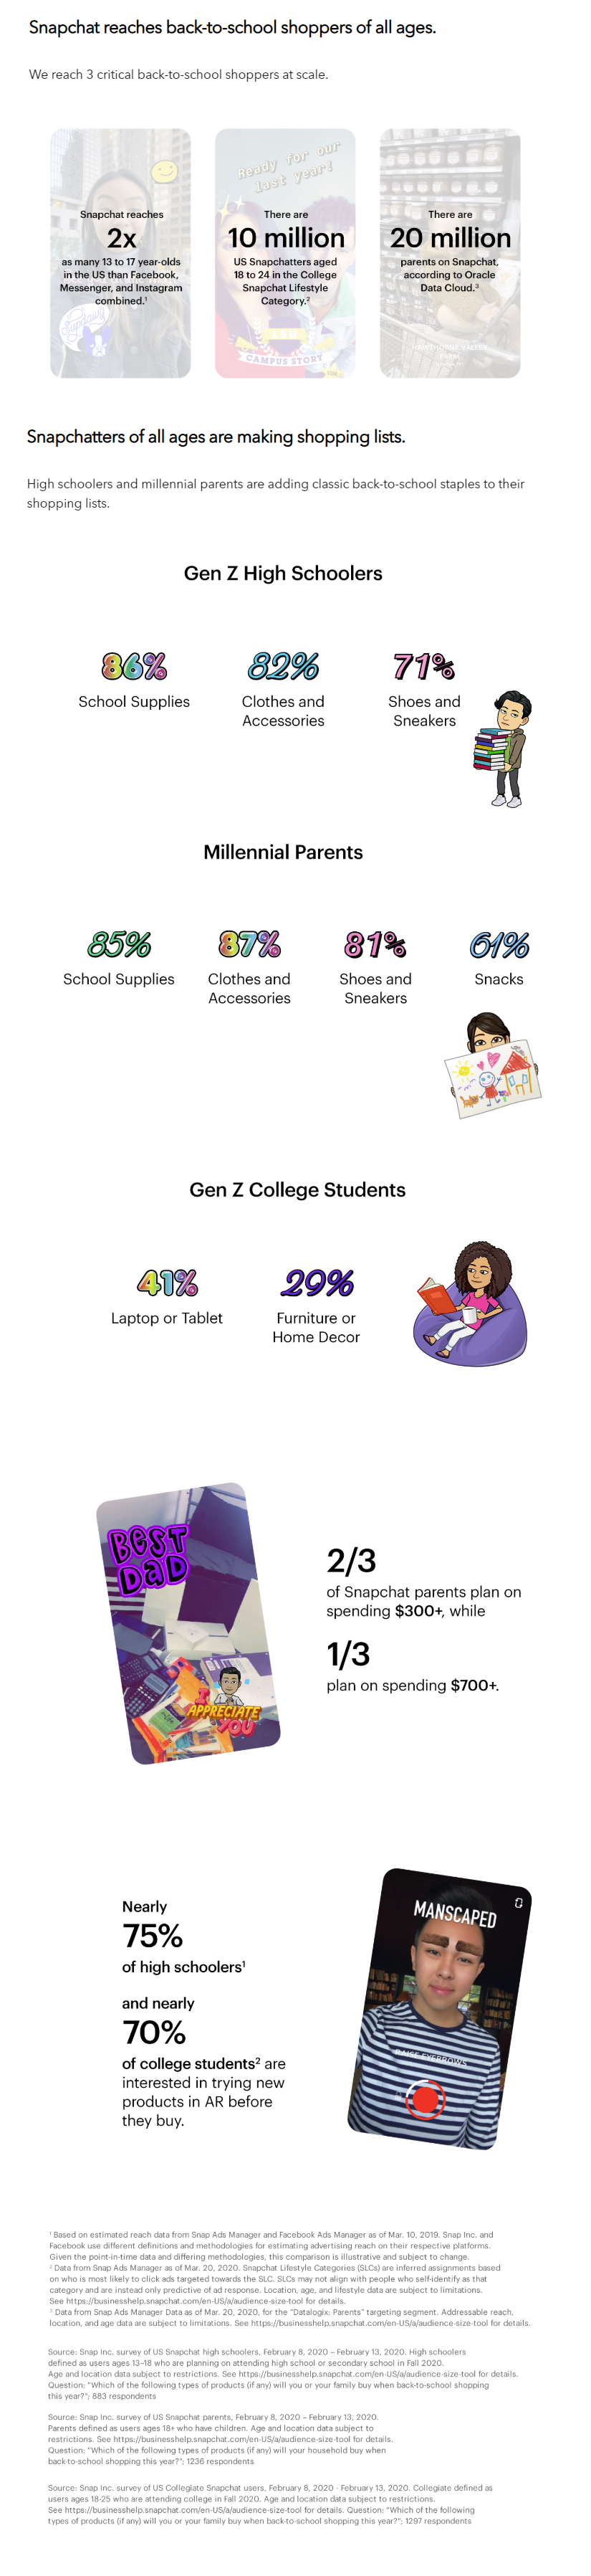 Snapchat back to school data